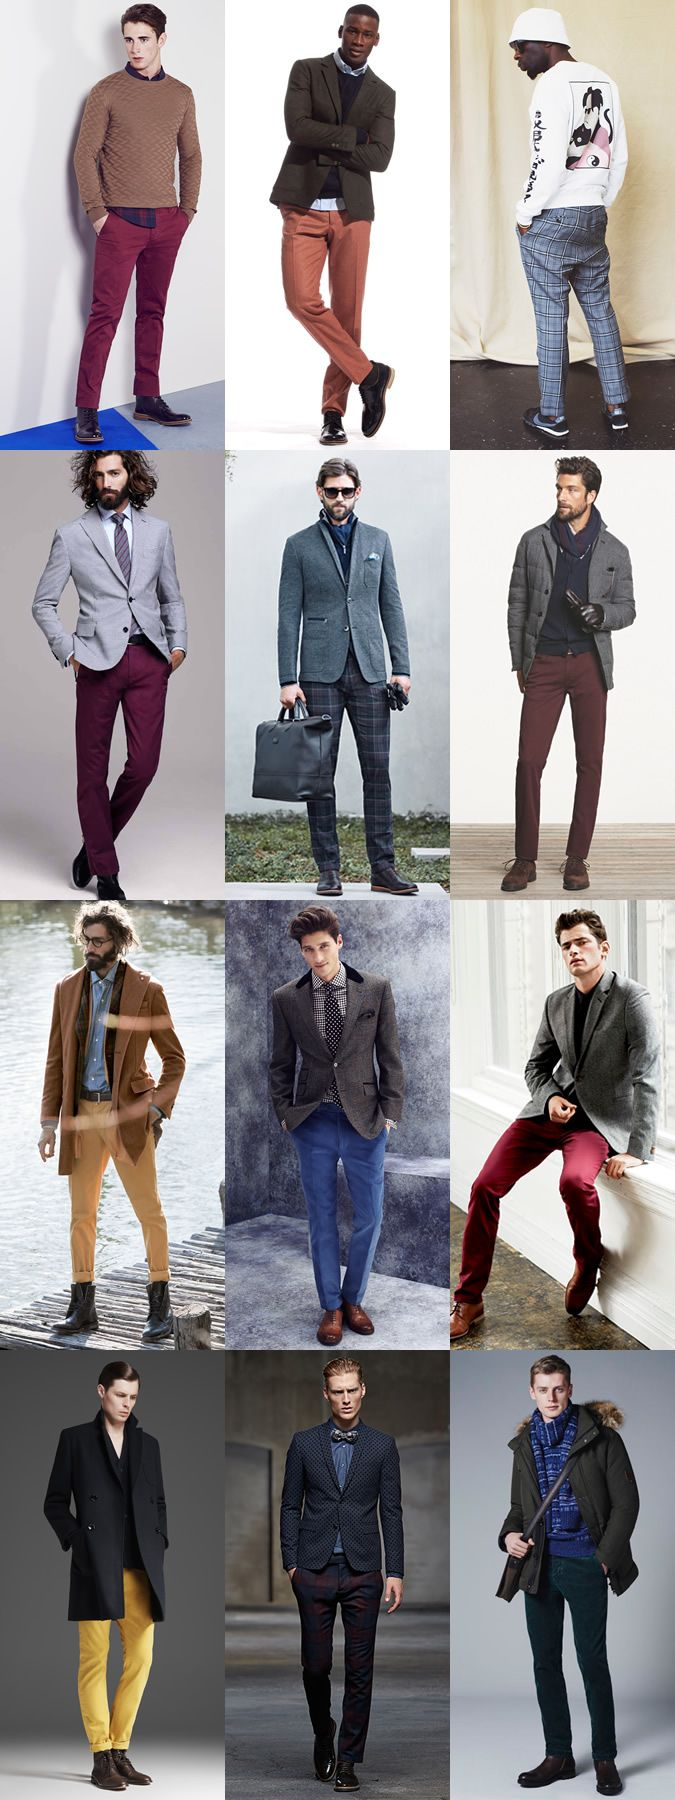 Men's Coloured/Patterned Trousers and Chinos Autumn/Winter Outfit Inspiration Lookbook